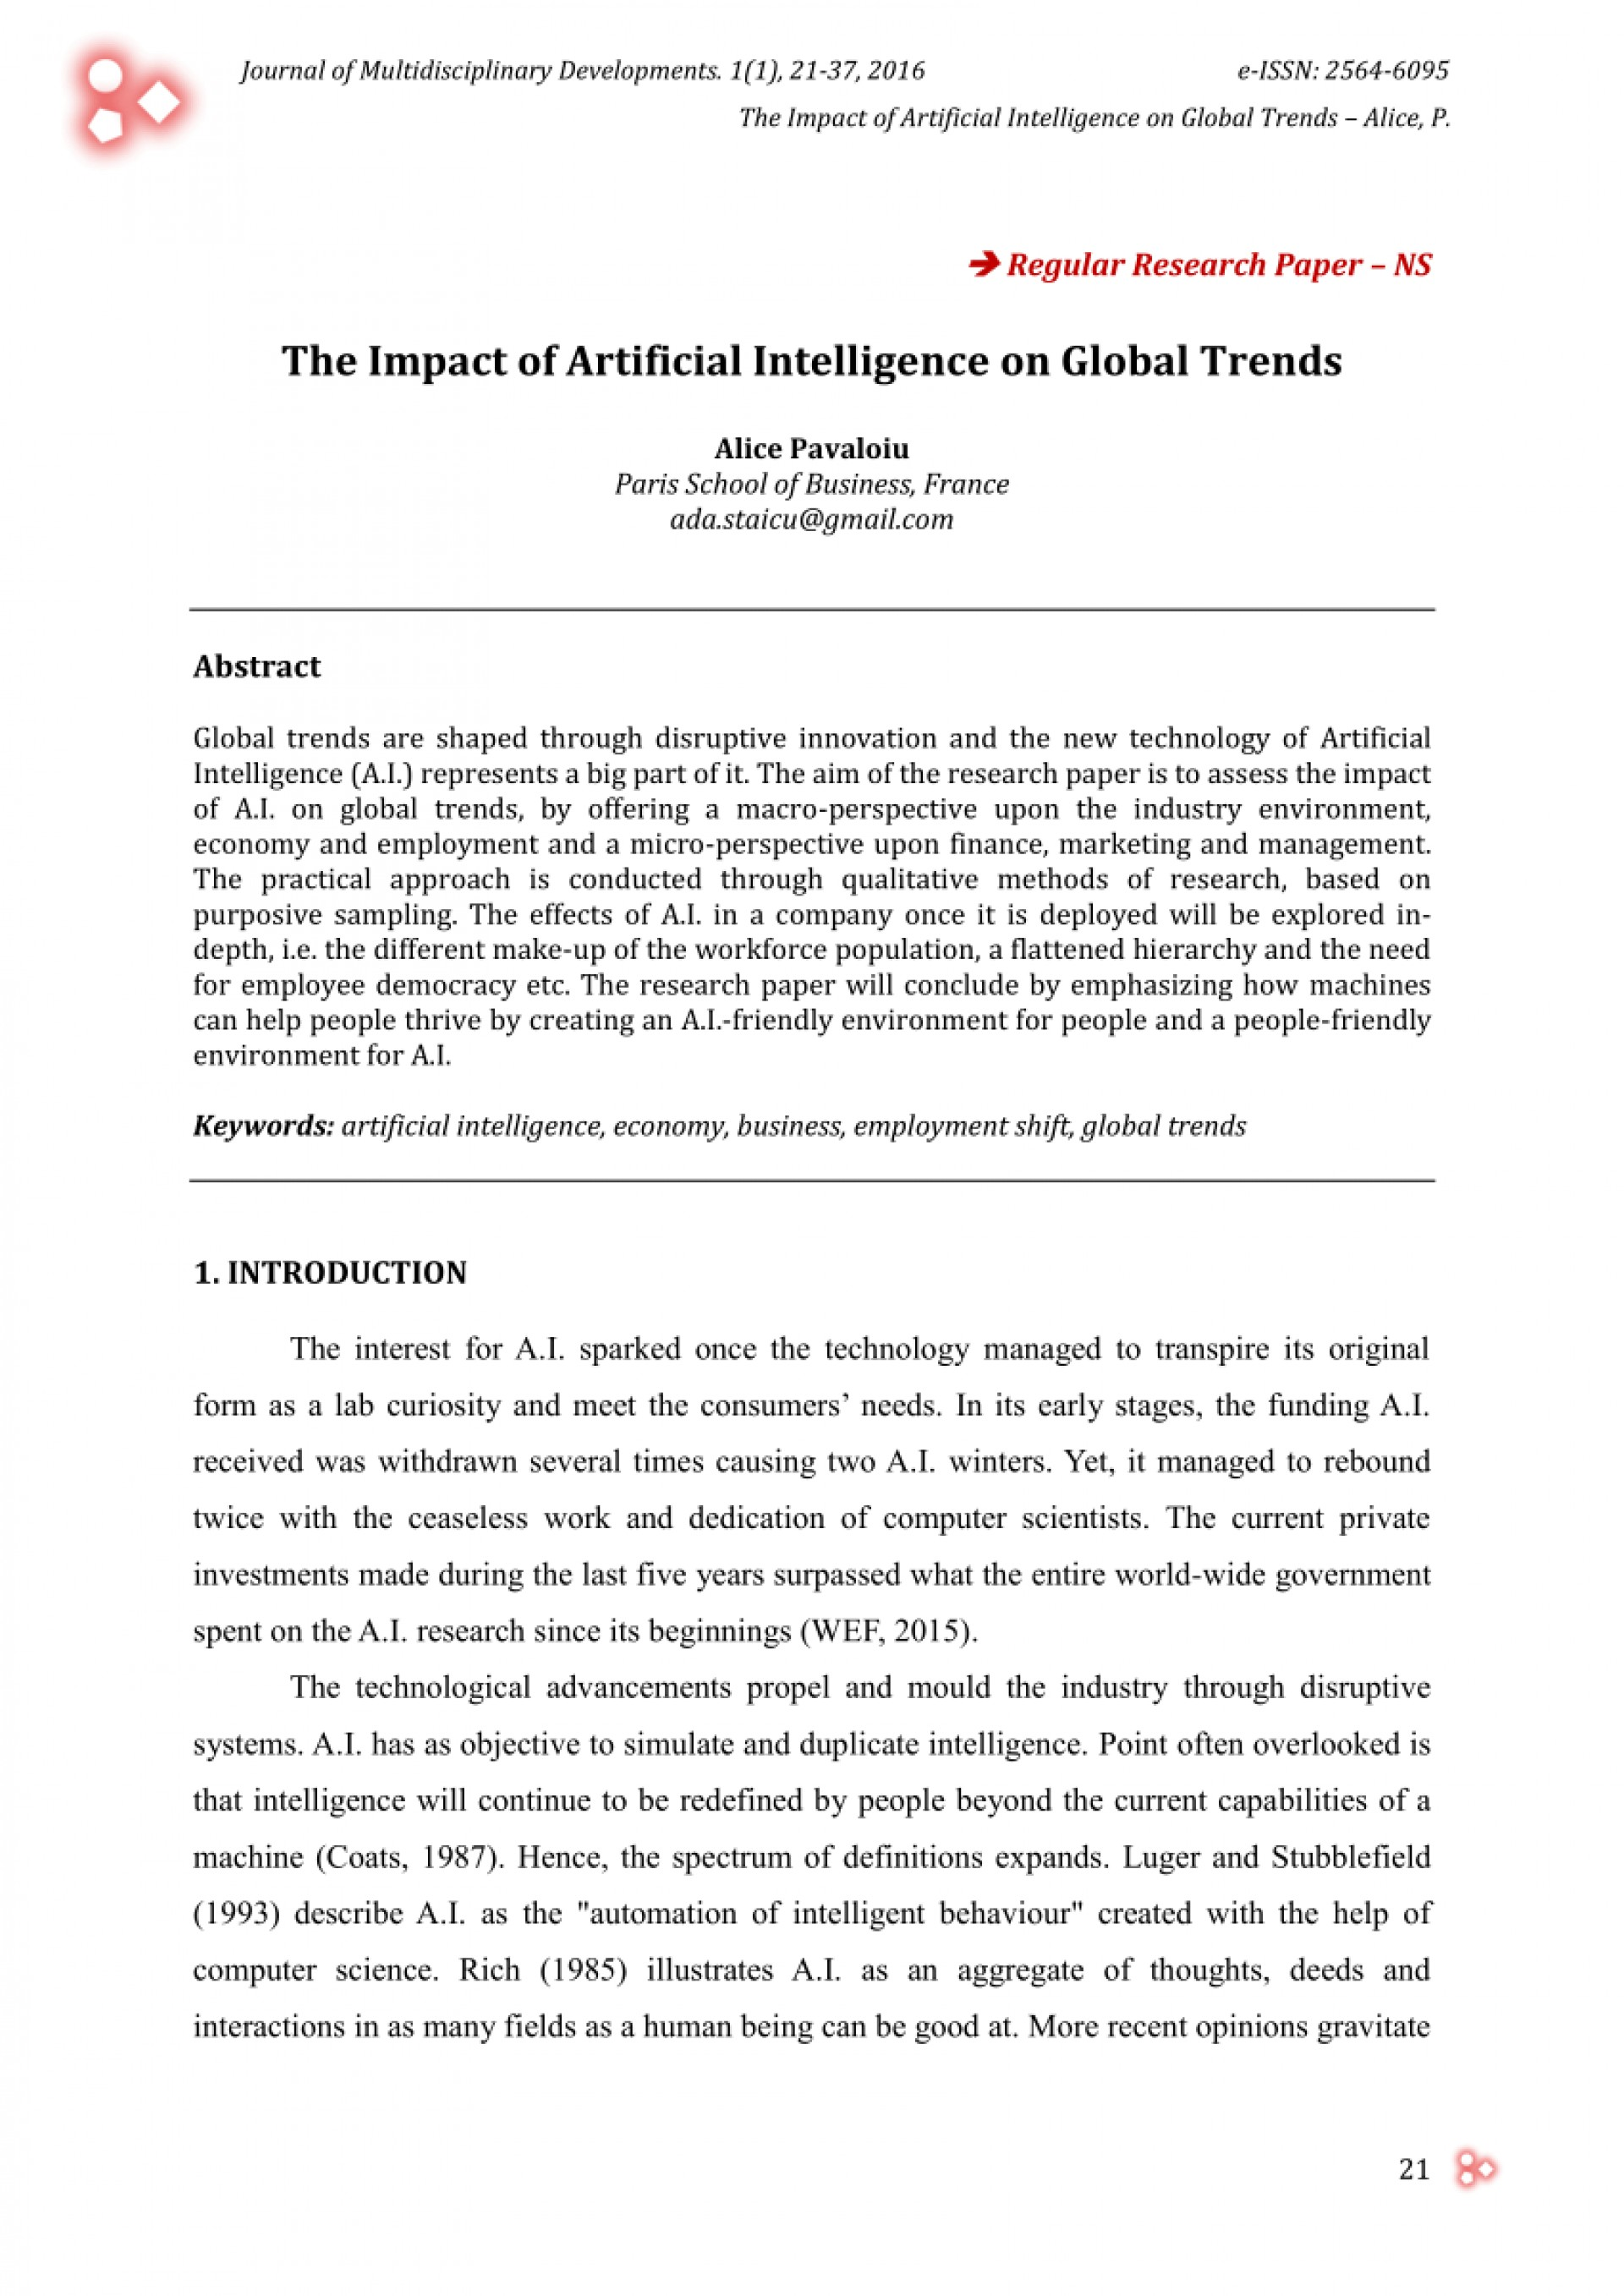 001 Research Paper Artificial Intelligence Papers Singular 2016 1920